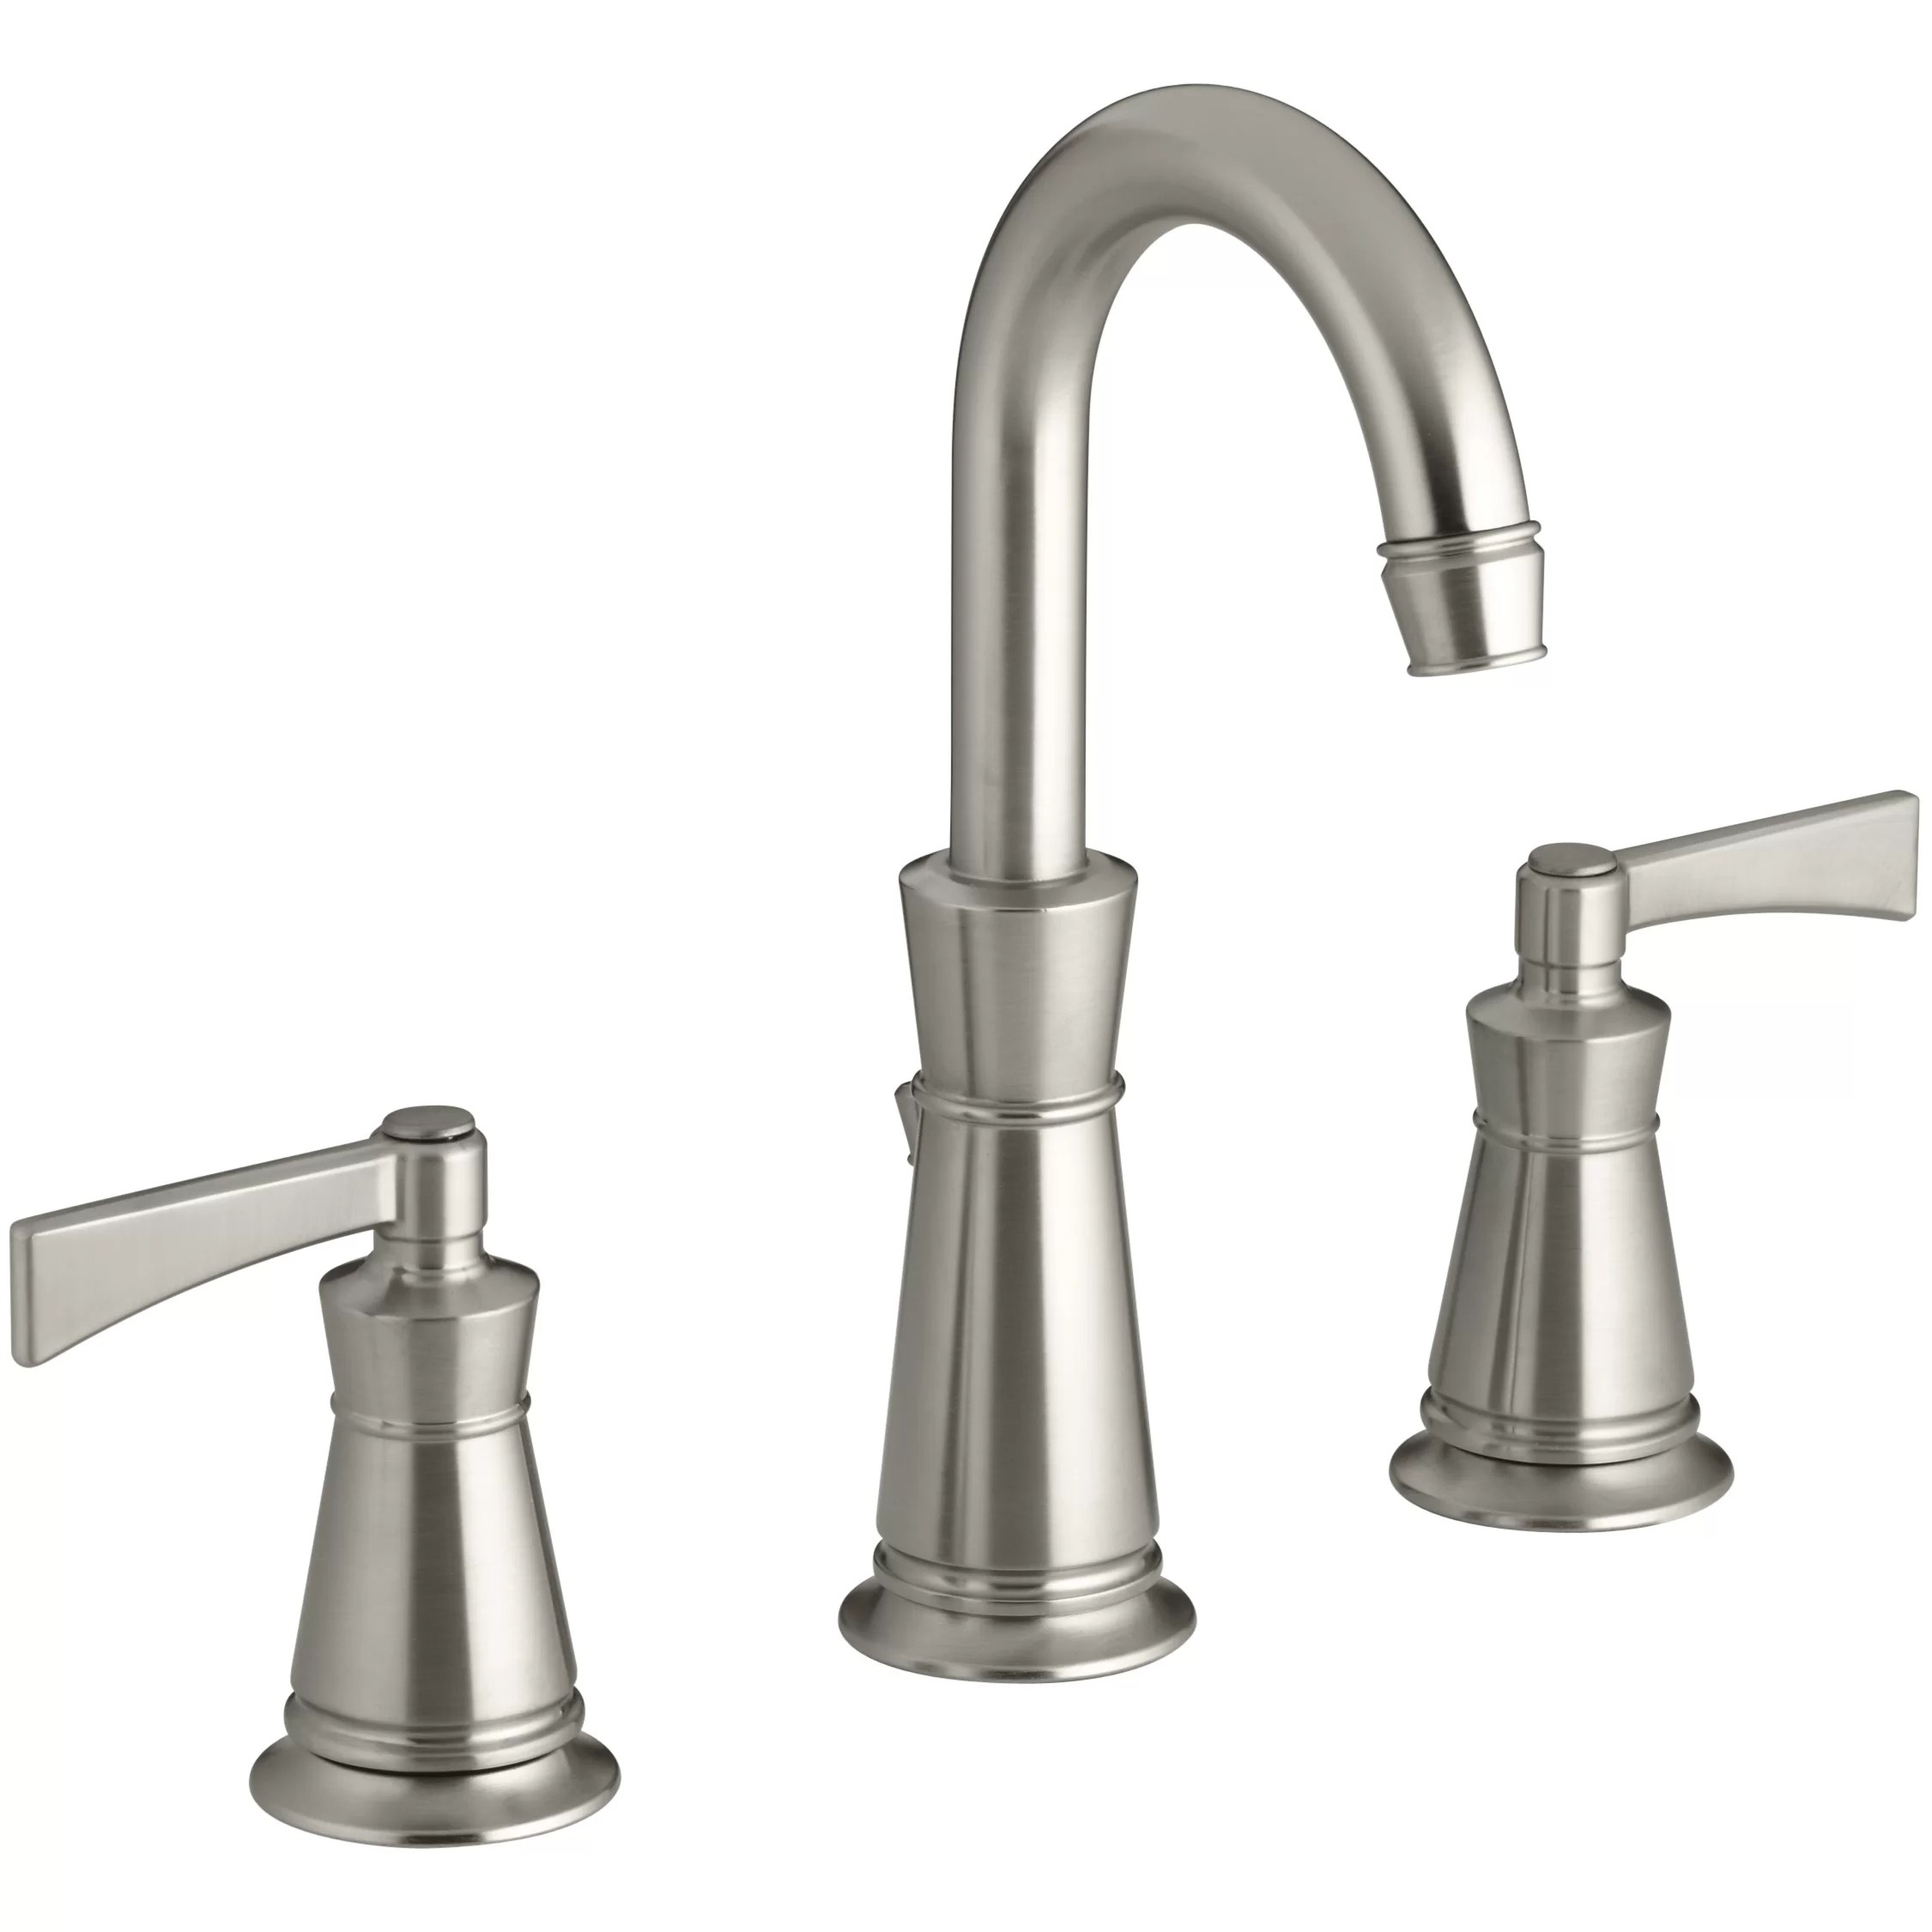 Kohler Kohler Archer Bathroom Faucet  Reviews  Wayfair